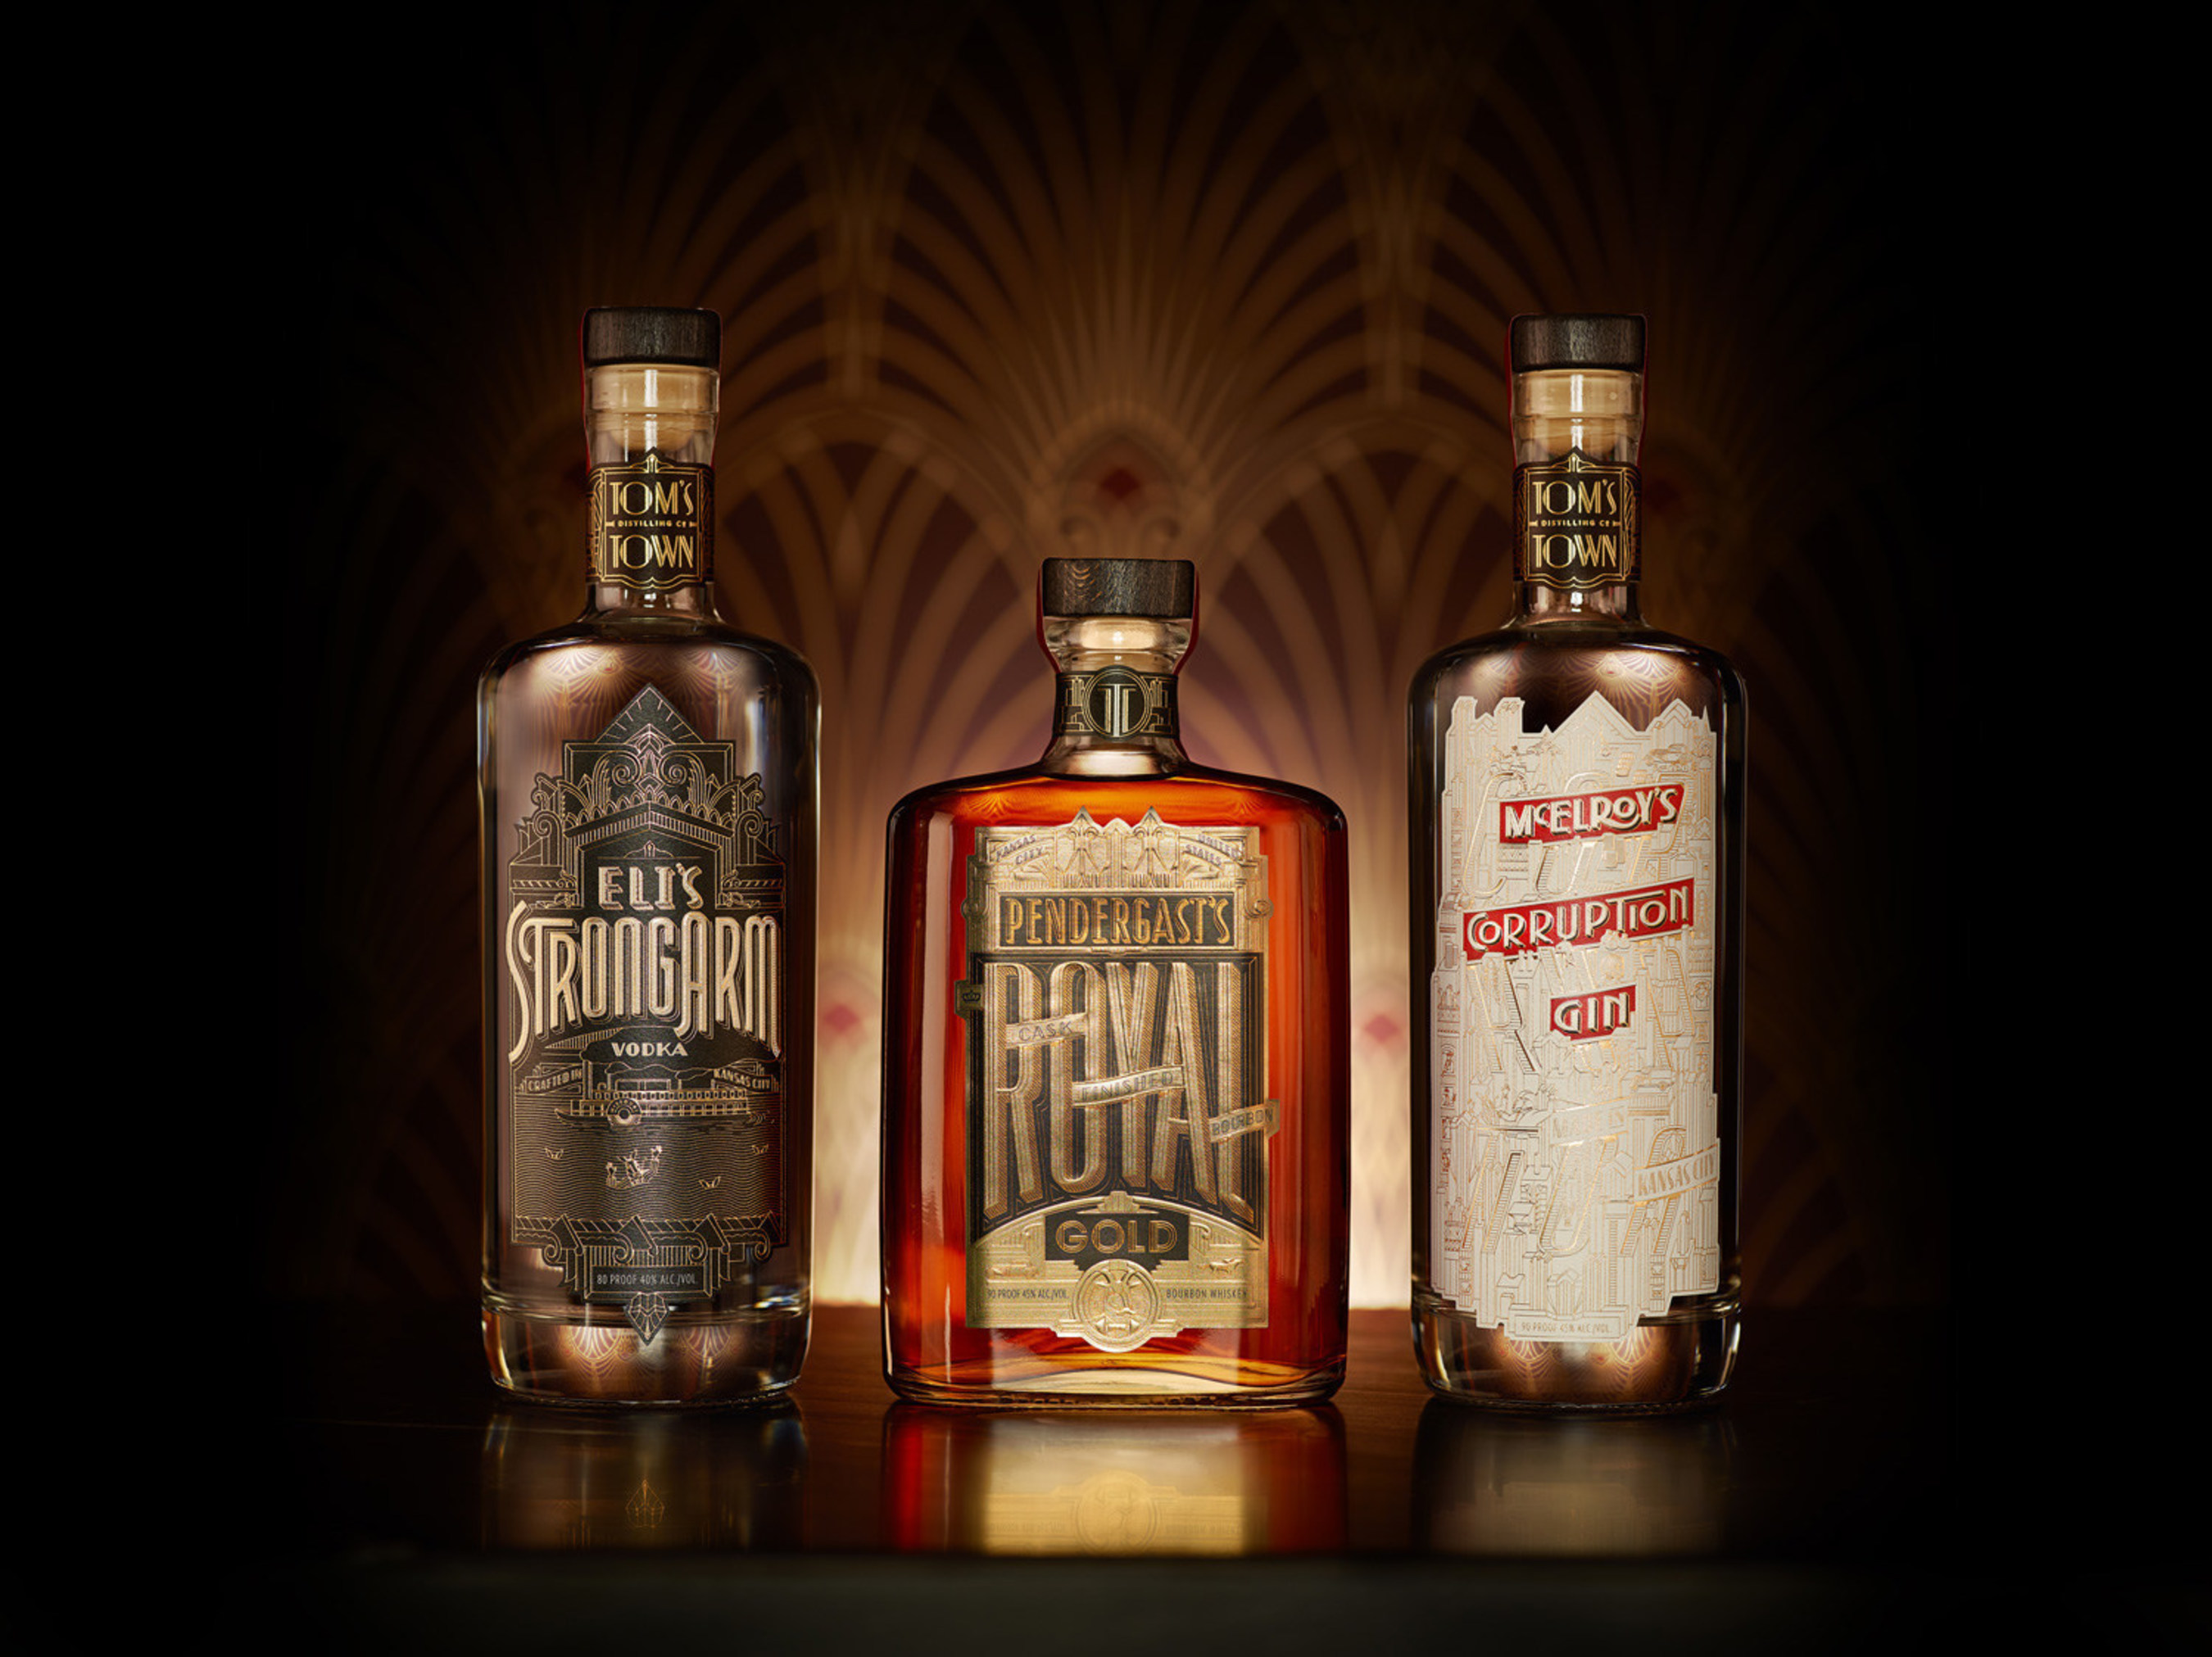 All three Tom's Town spirits are now available in both Kansas and Missouri: Pendergast's Royal Gold Bourbon, McElroy's Corruption Gin and Eli's StrongArm Vodka.